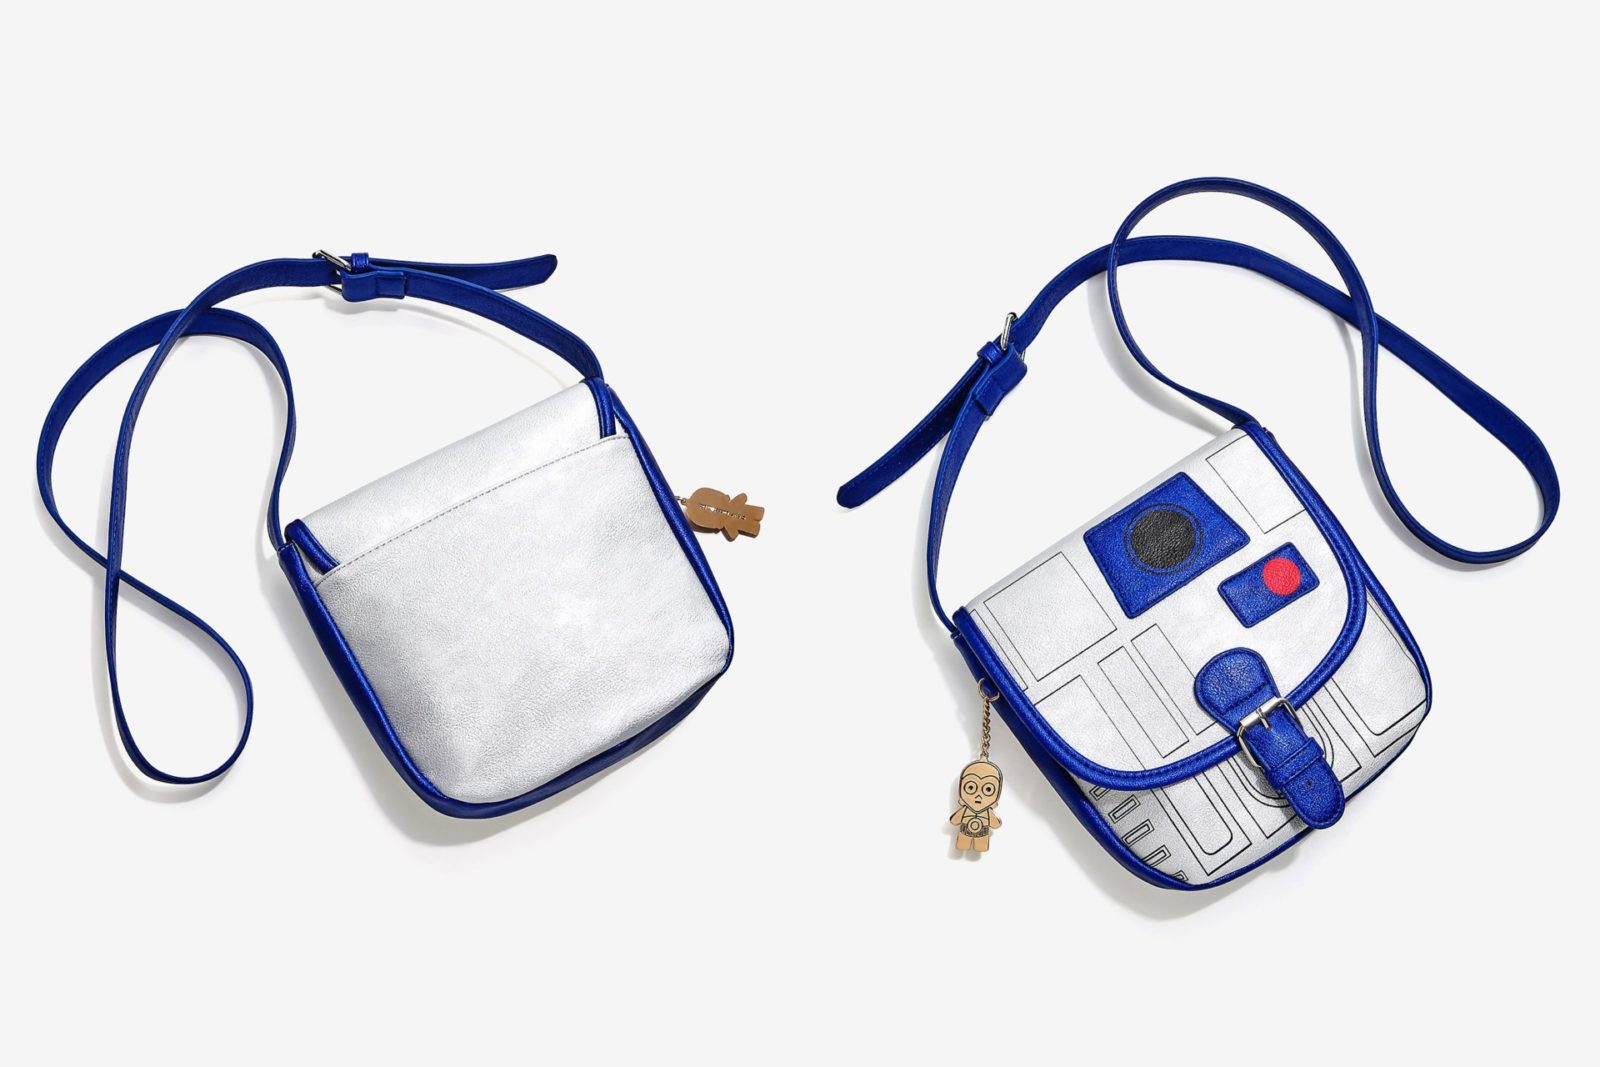 Loungefly R2-D2 metallic mini bag!